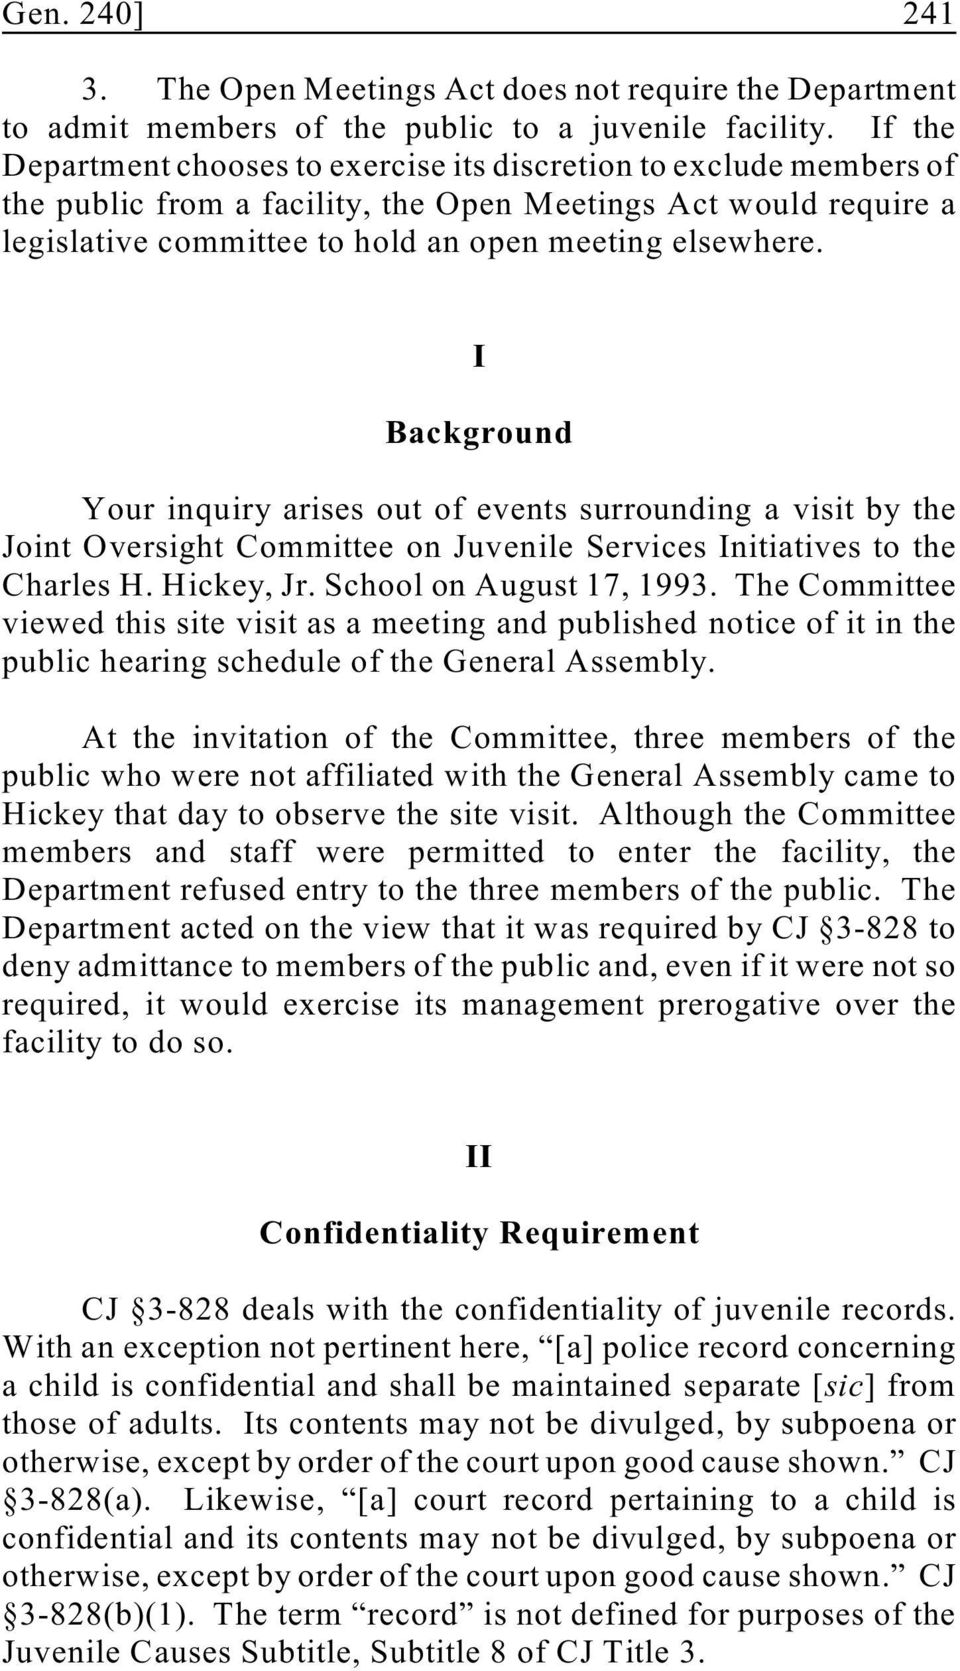 I Background Your inquiry arises out of events surrounding a visit by the Joint Oversight Committee on Juvenile Services Initiatives to the Charles H. Hickey, Jr. School on August 17, 1993.